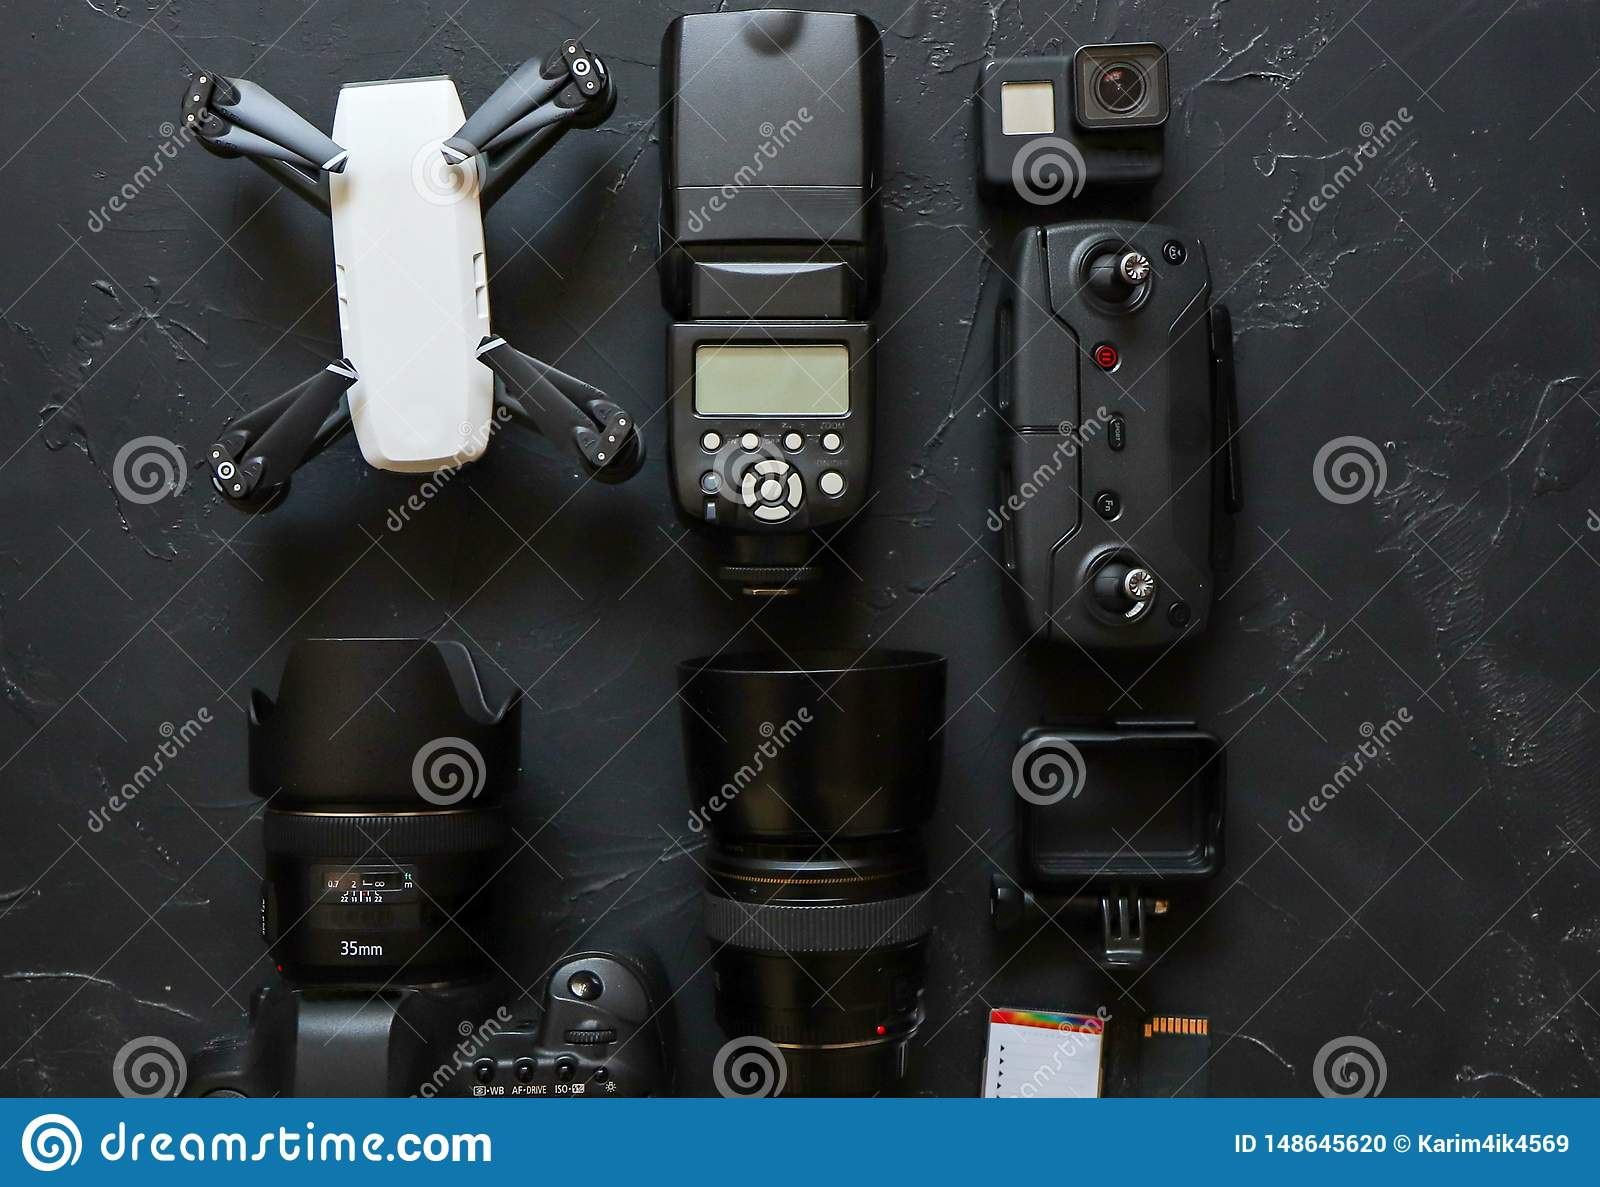 Set of videographer on a black background. Digital camera, memory card, action camera, drone, remote control and camera. Top view